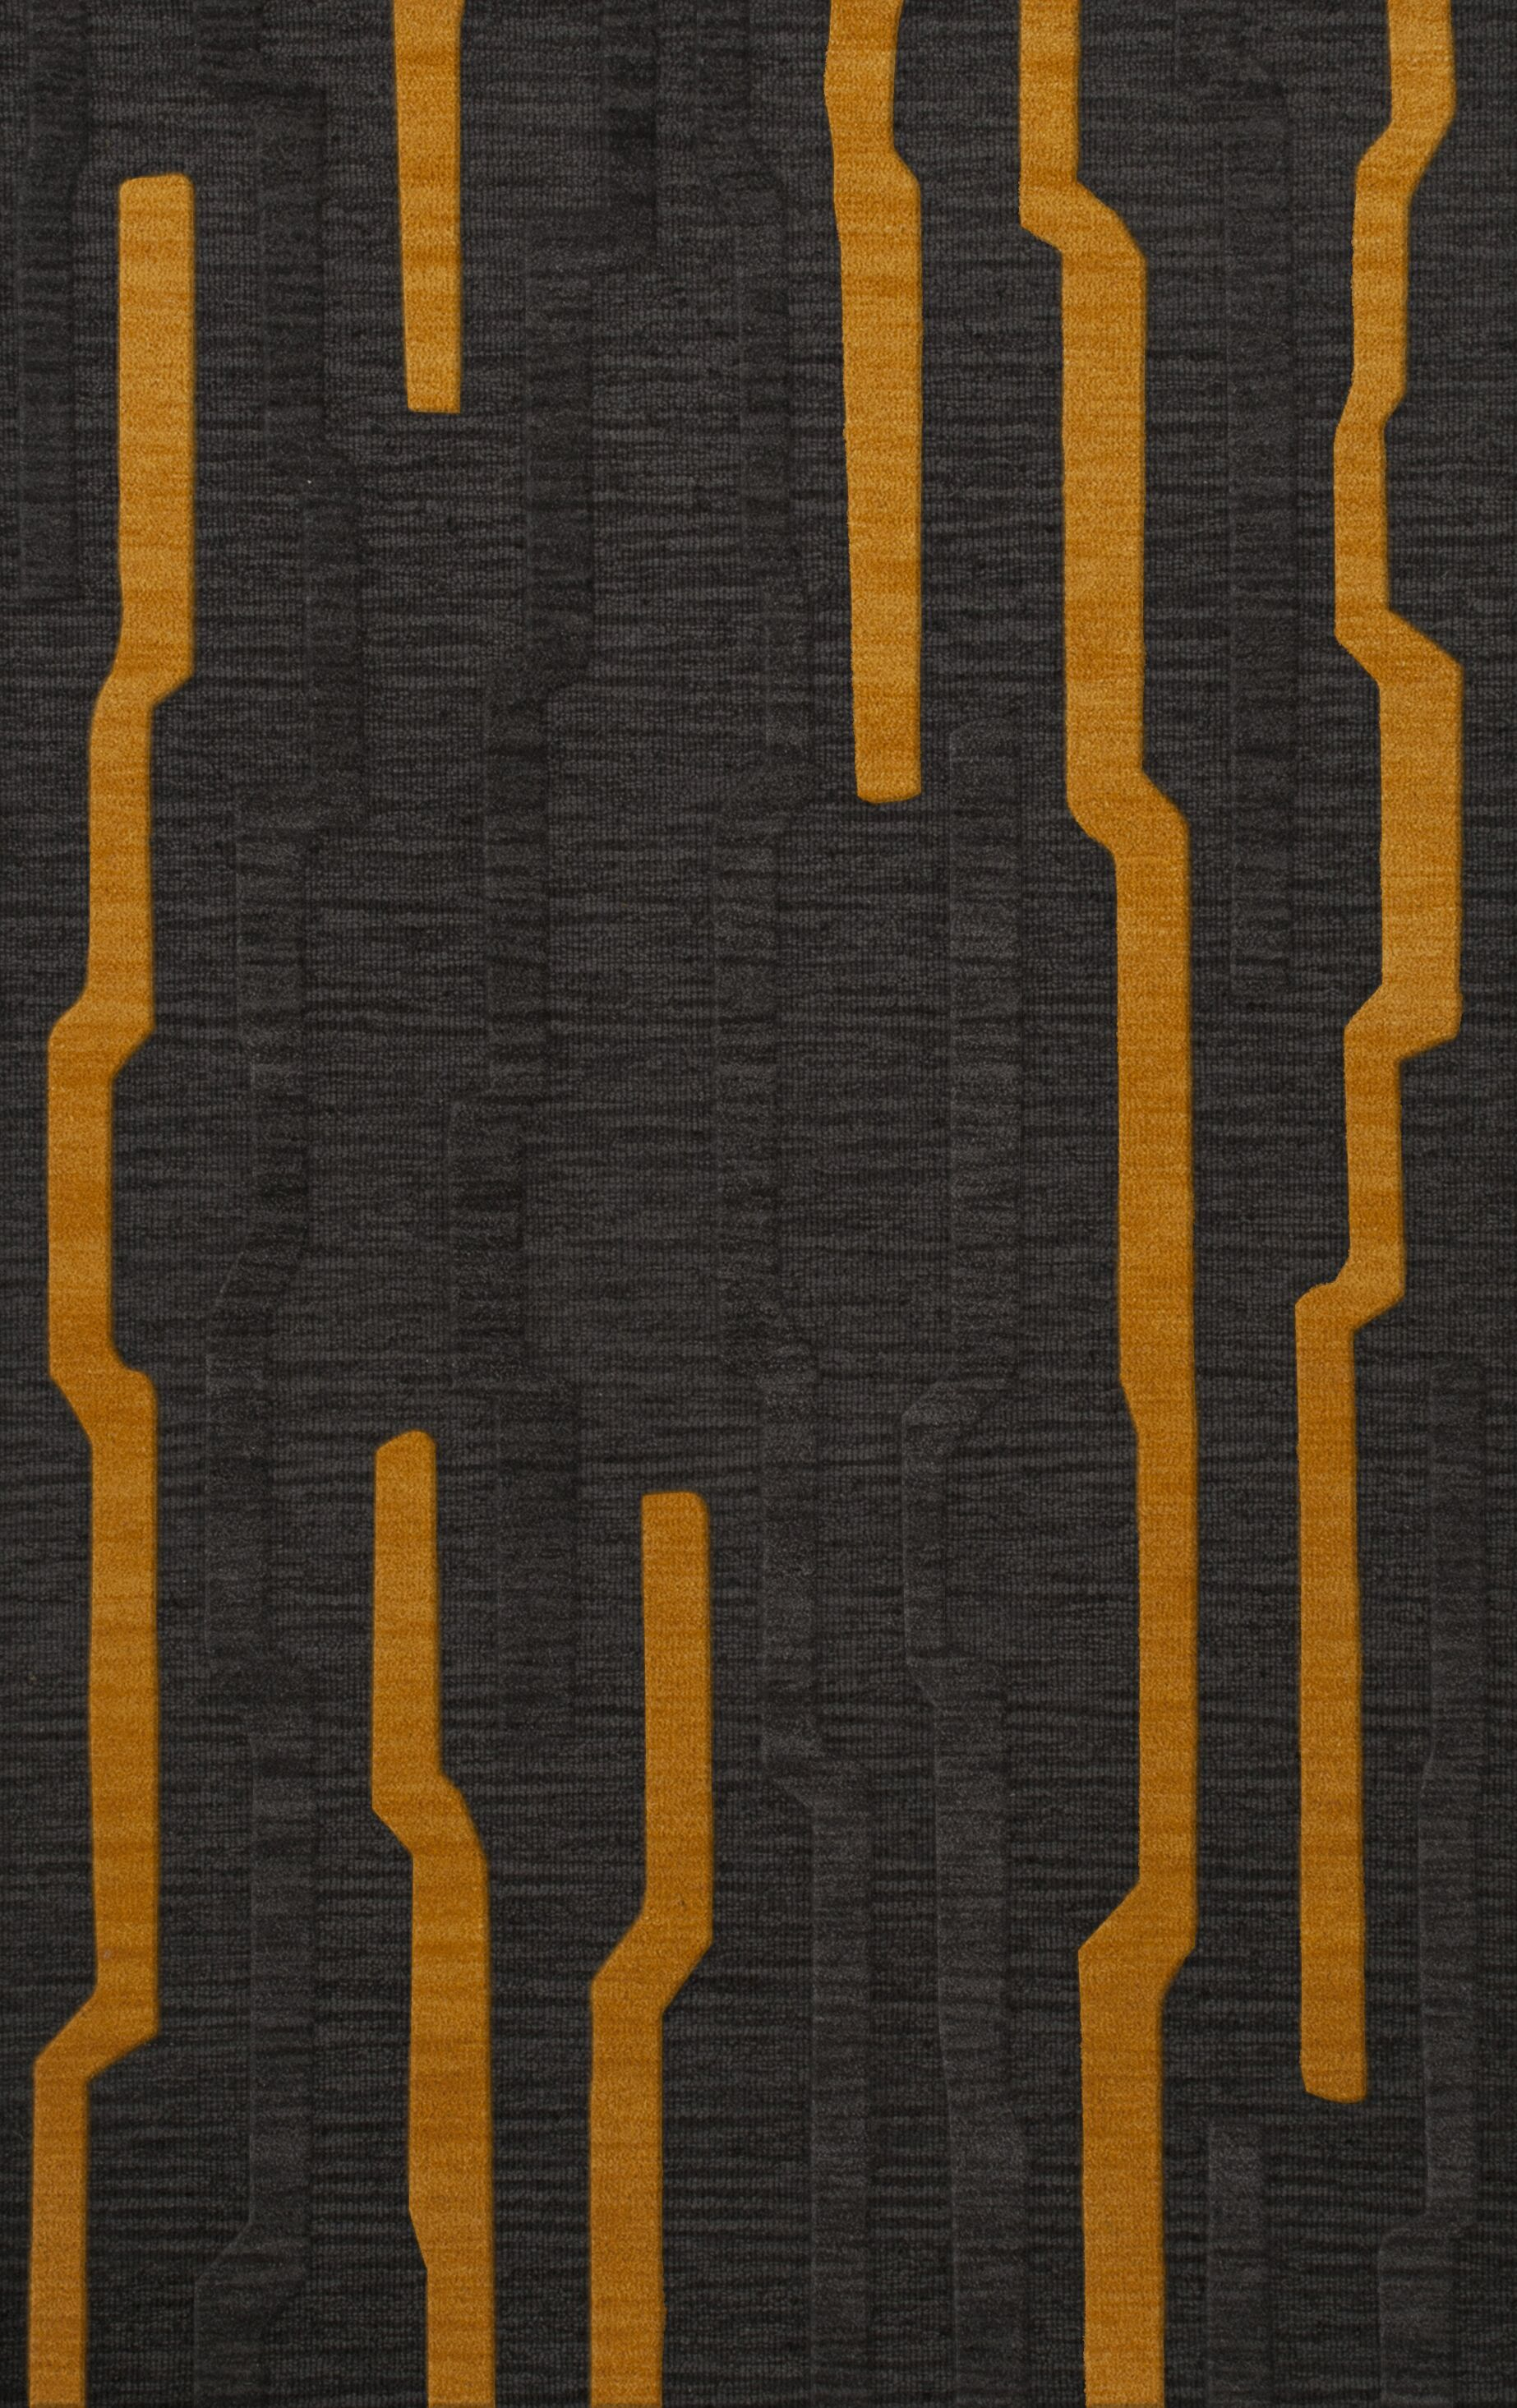 Haskett Wool Seal Area Rug Rug Size: Rectangle 4' x 6'